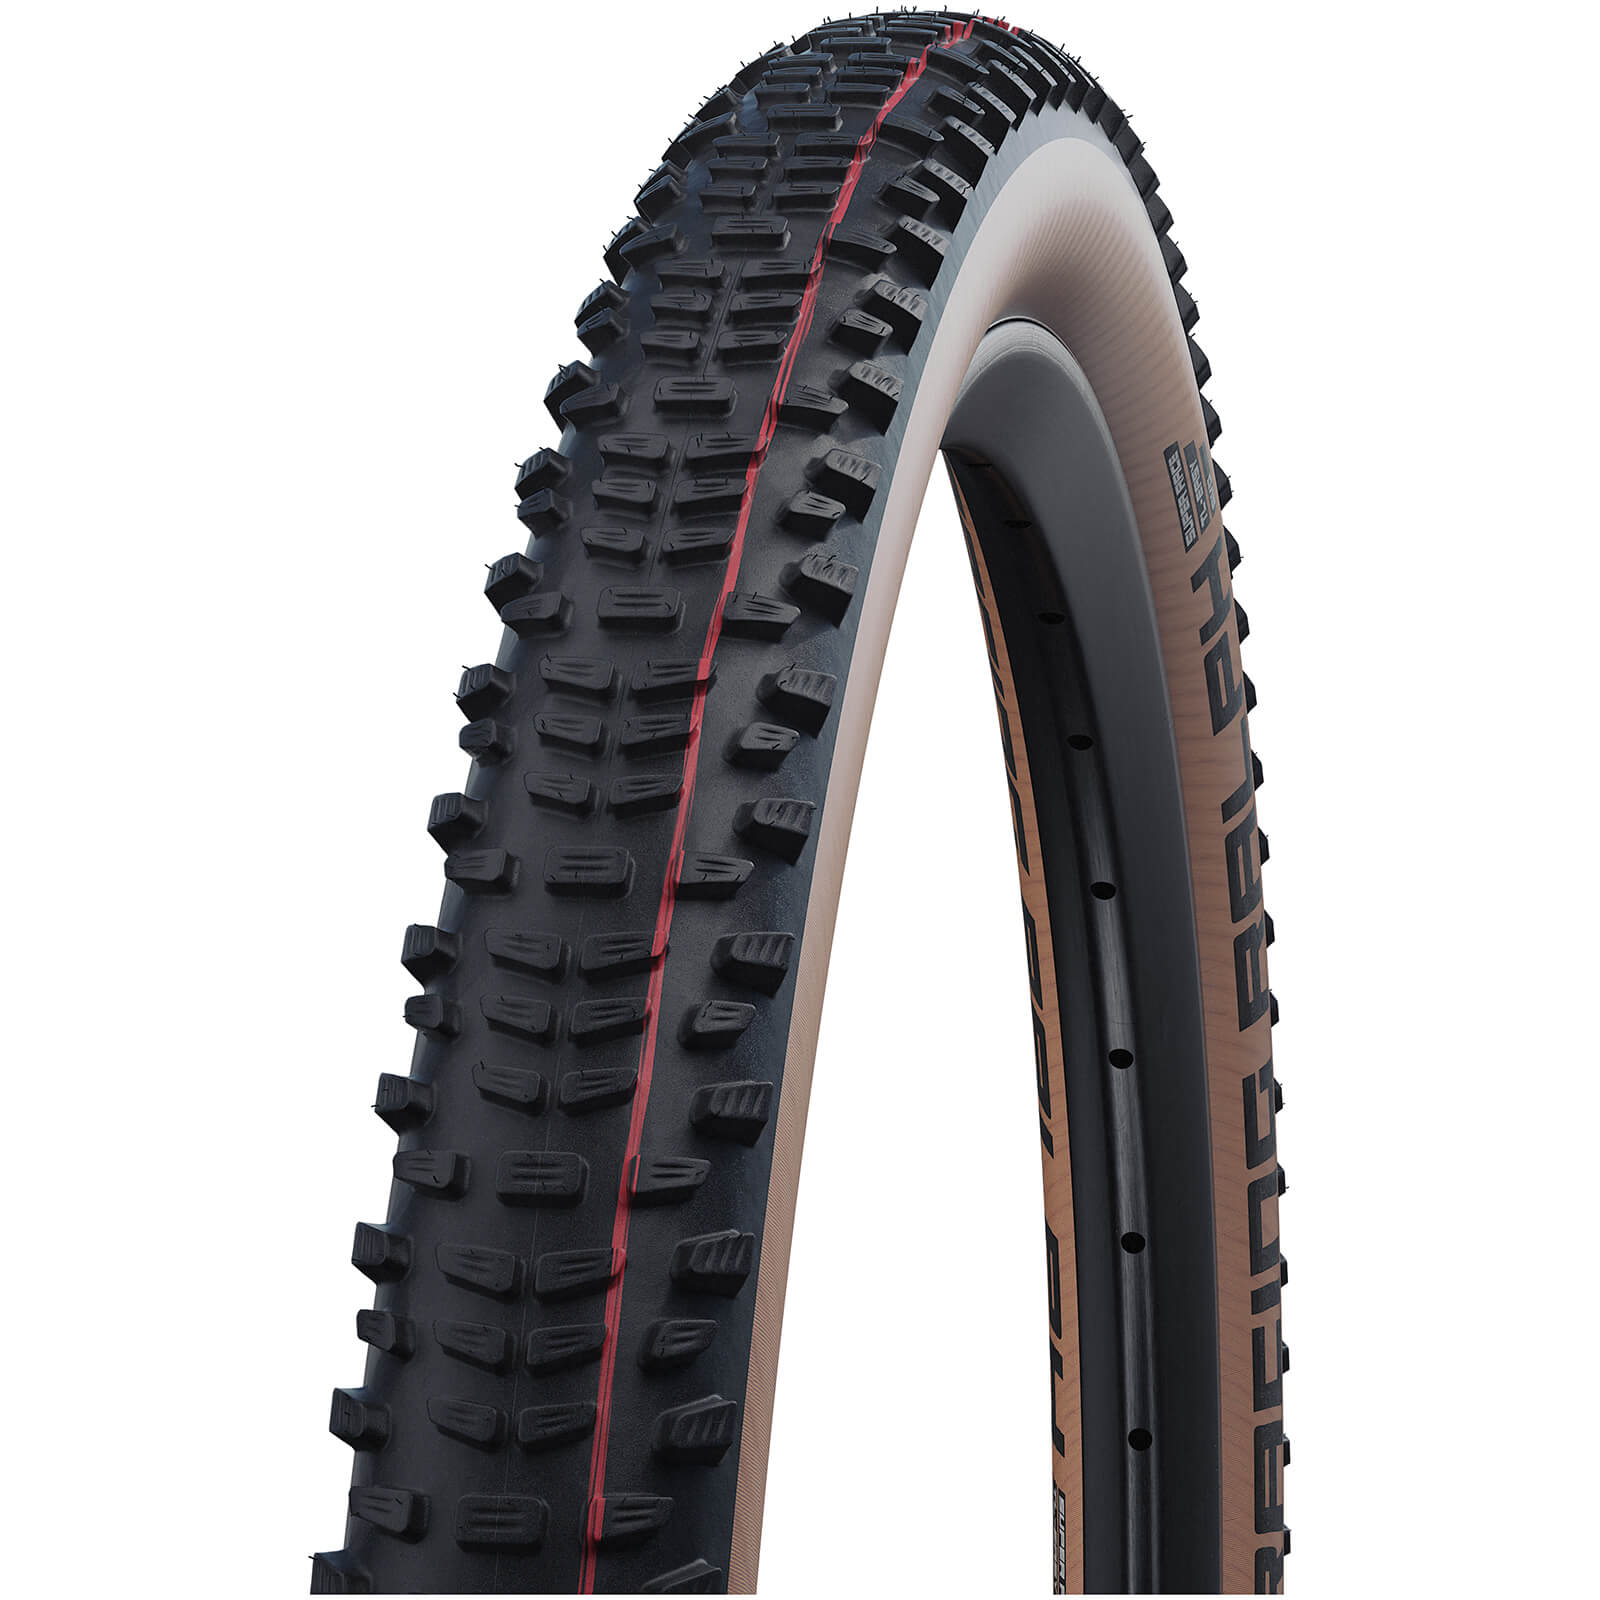 Cycling Schwalbe Racing Ralph Evo Super Race Tubeless MTB Tyre - Transparent Skin - 29in x 2.25in